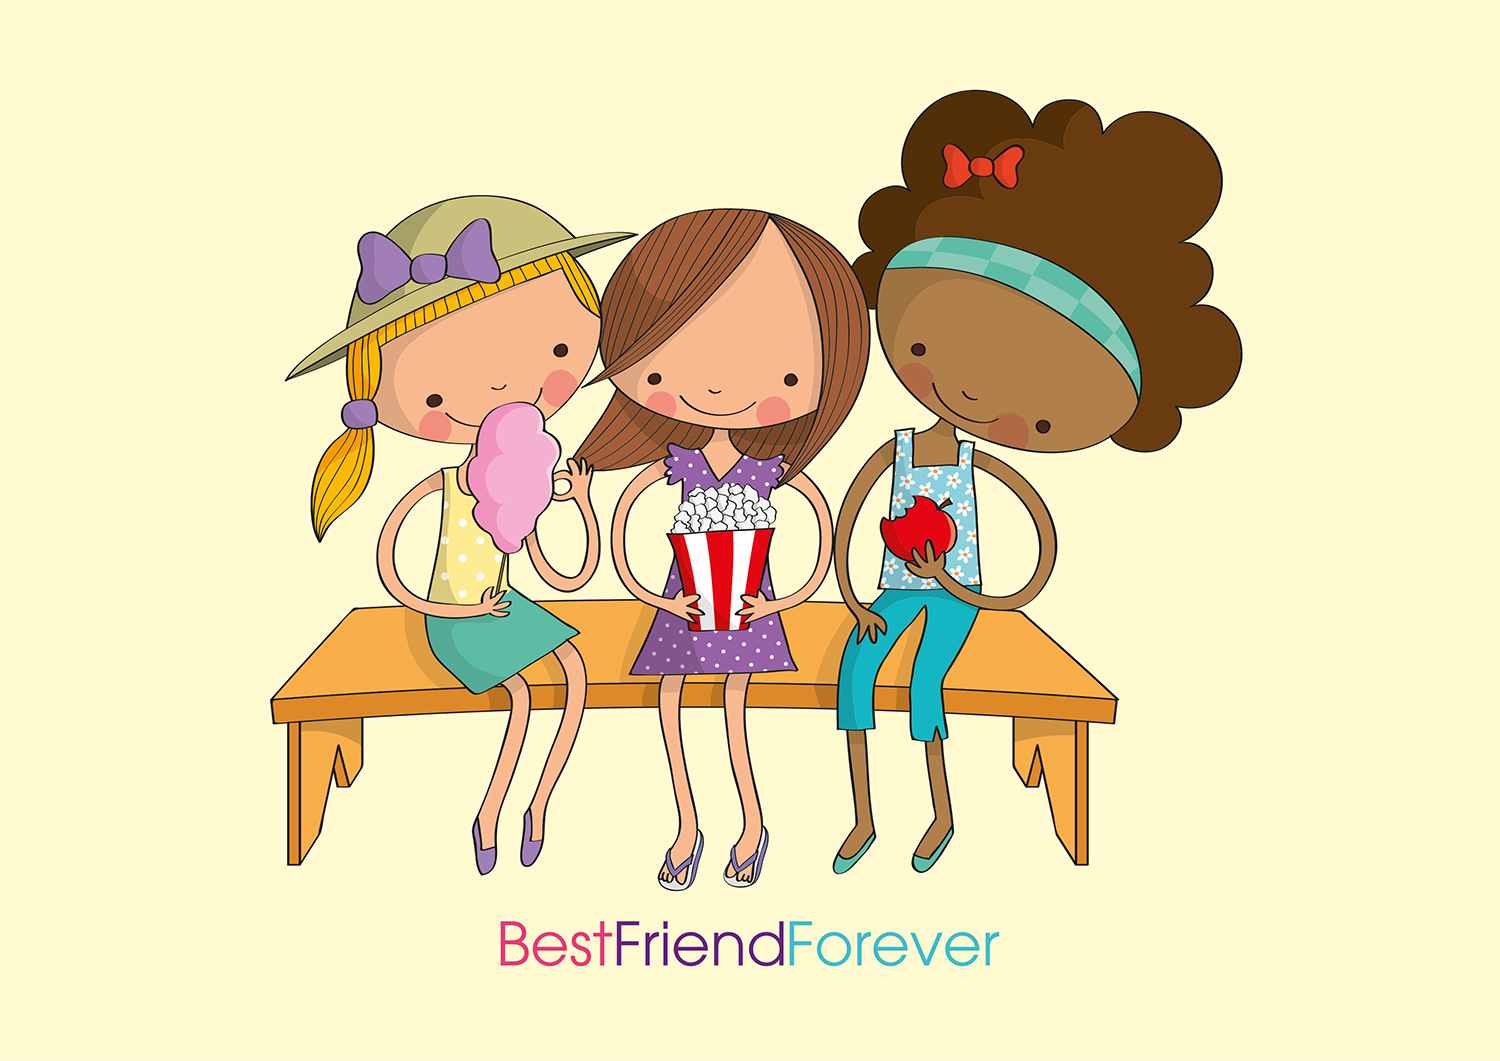 BFF Best Friends Forever example image 2